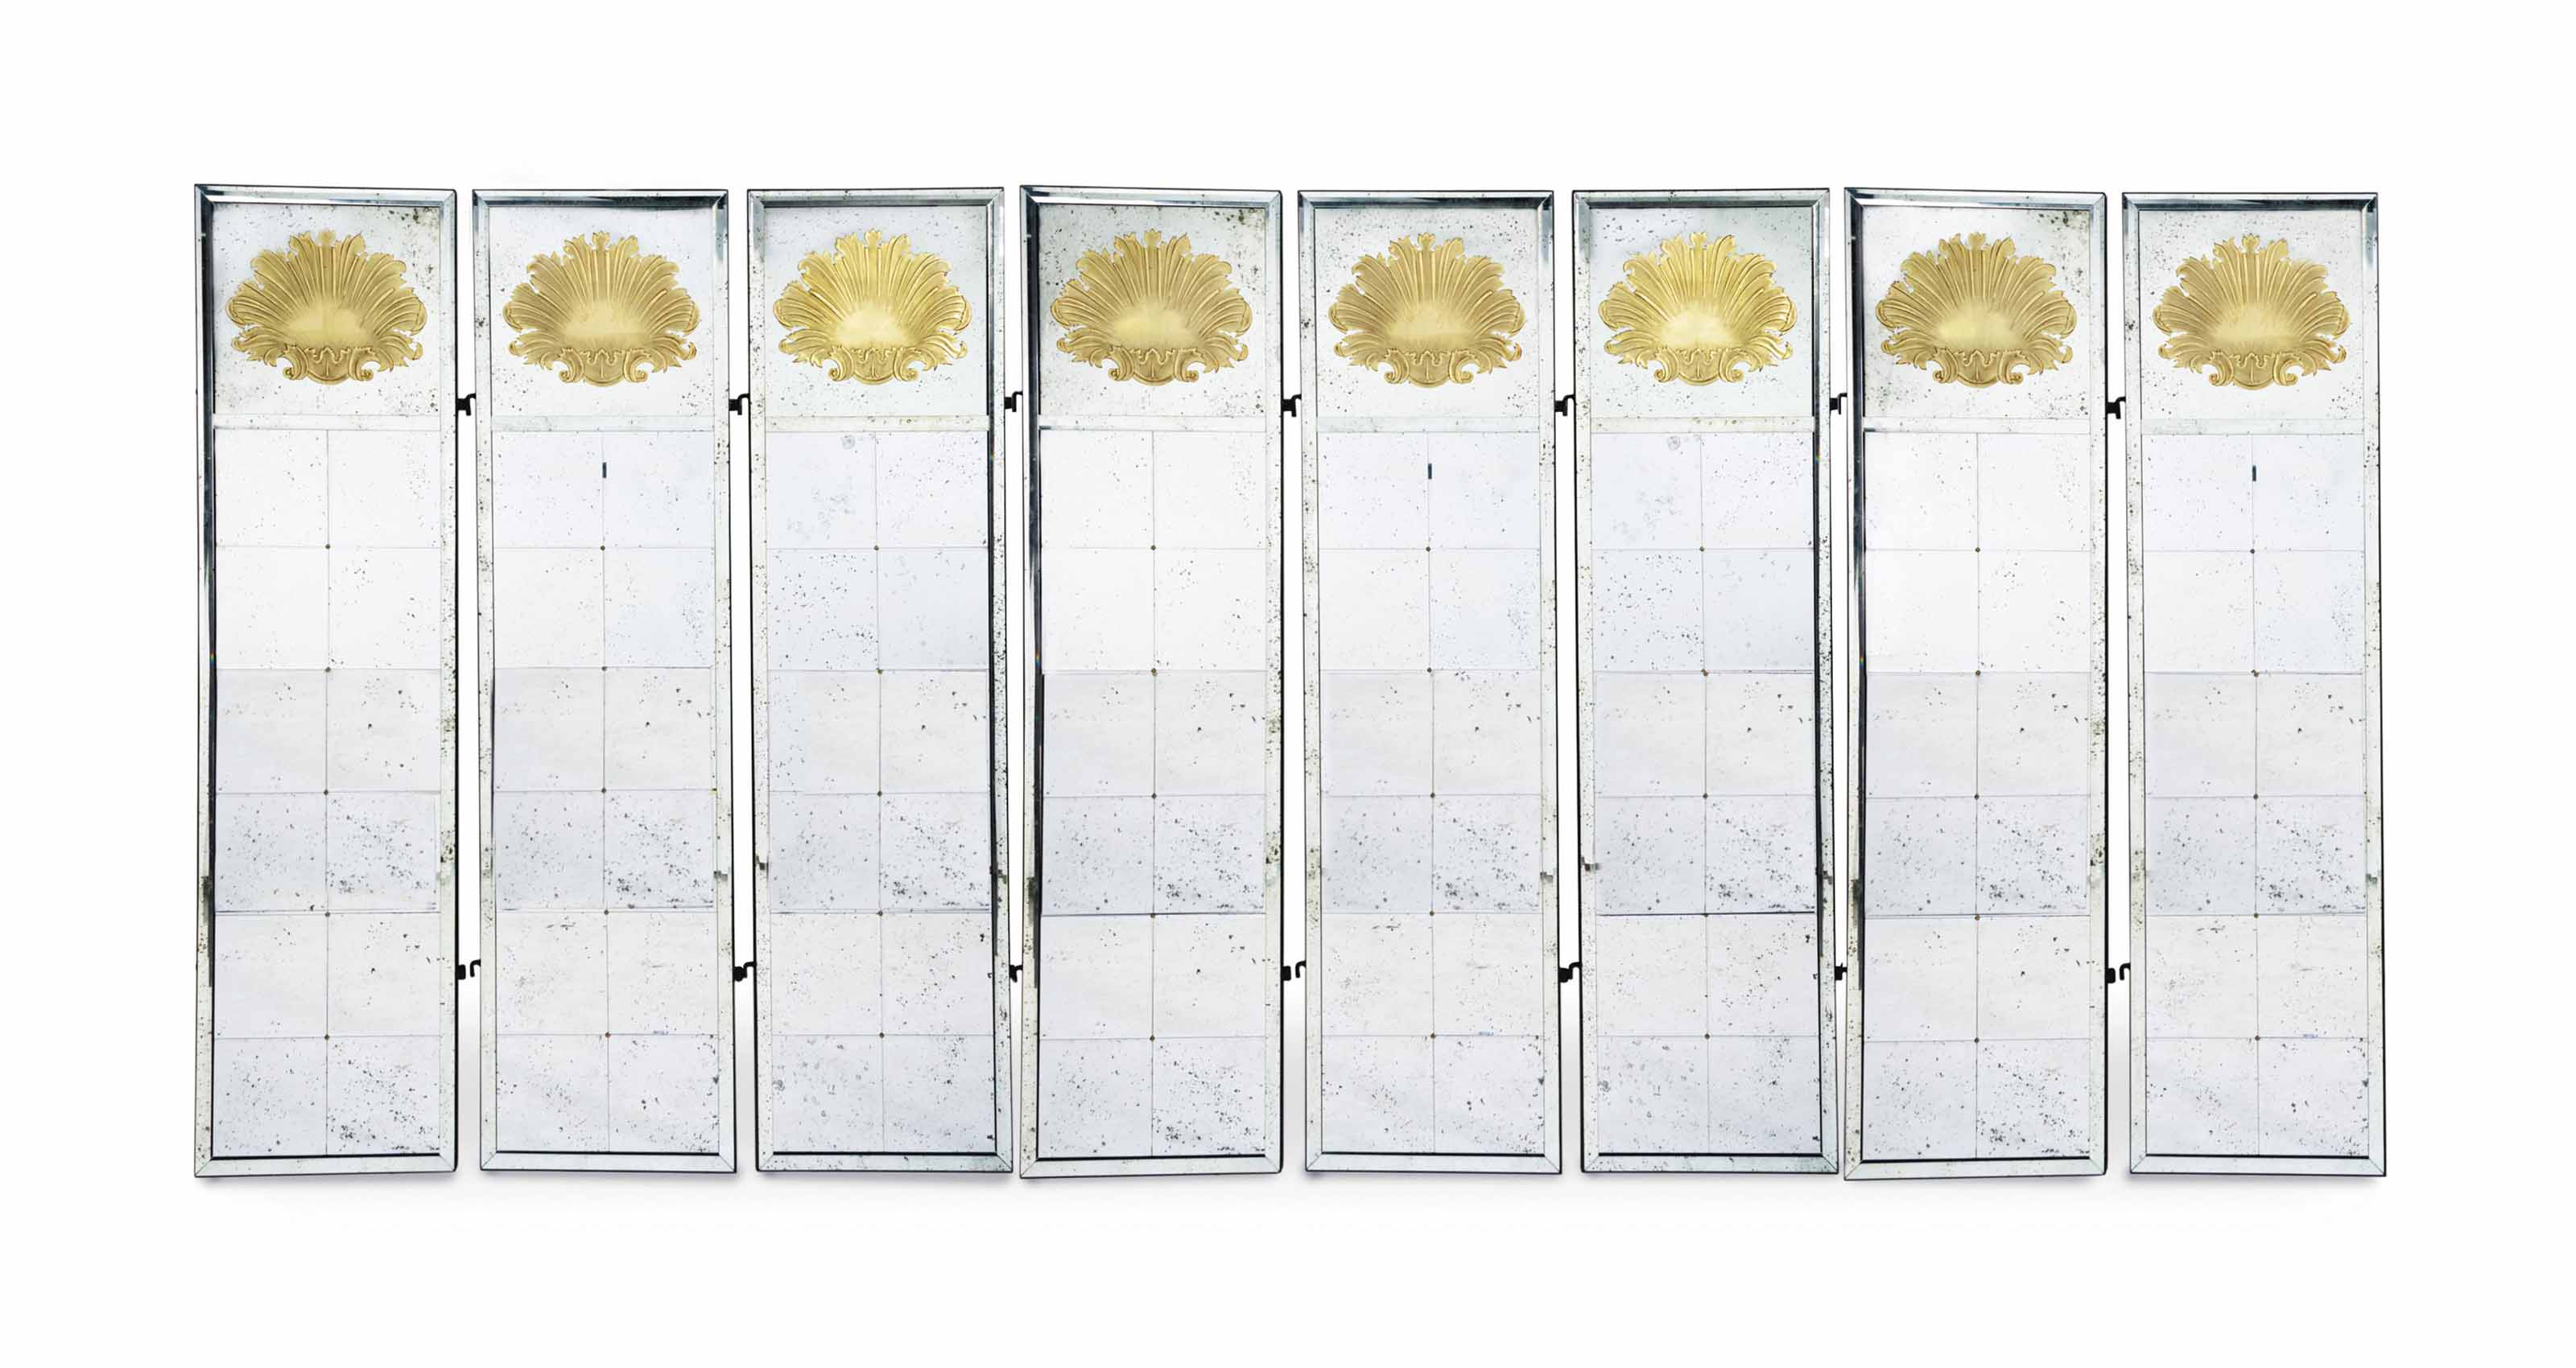 A GILT-DECORATED MIRROR GLASS EIGHT PANEL FLOOR SCREEN